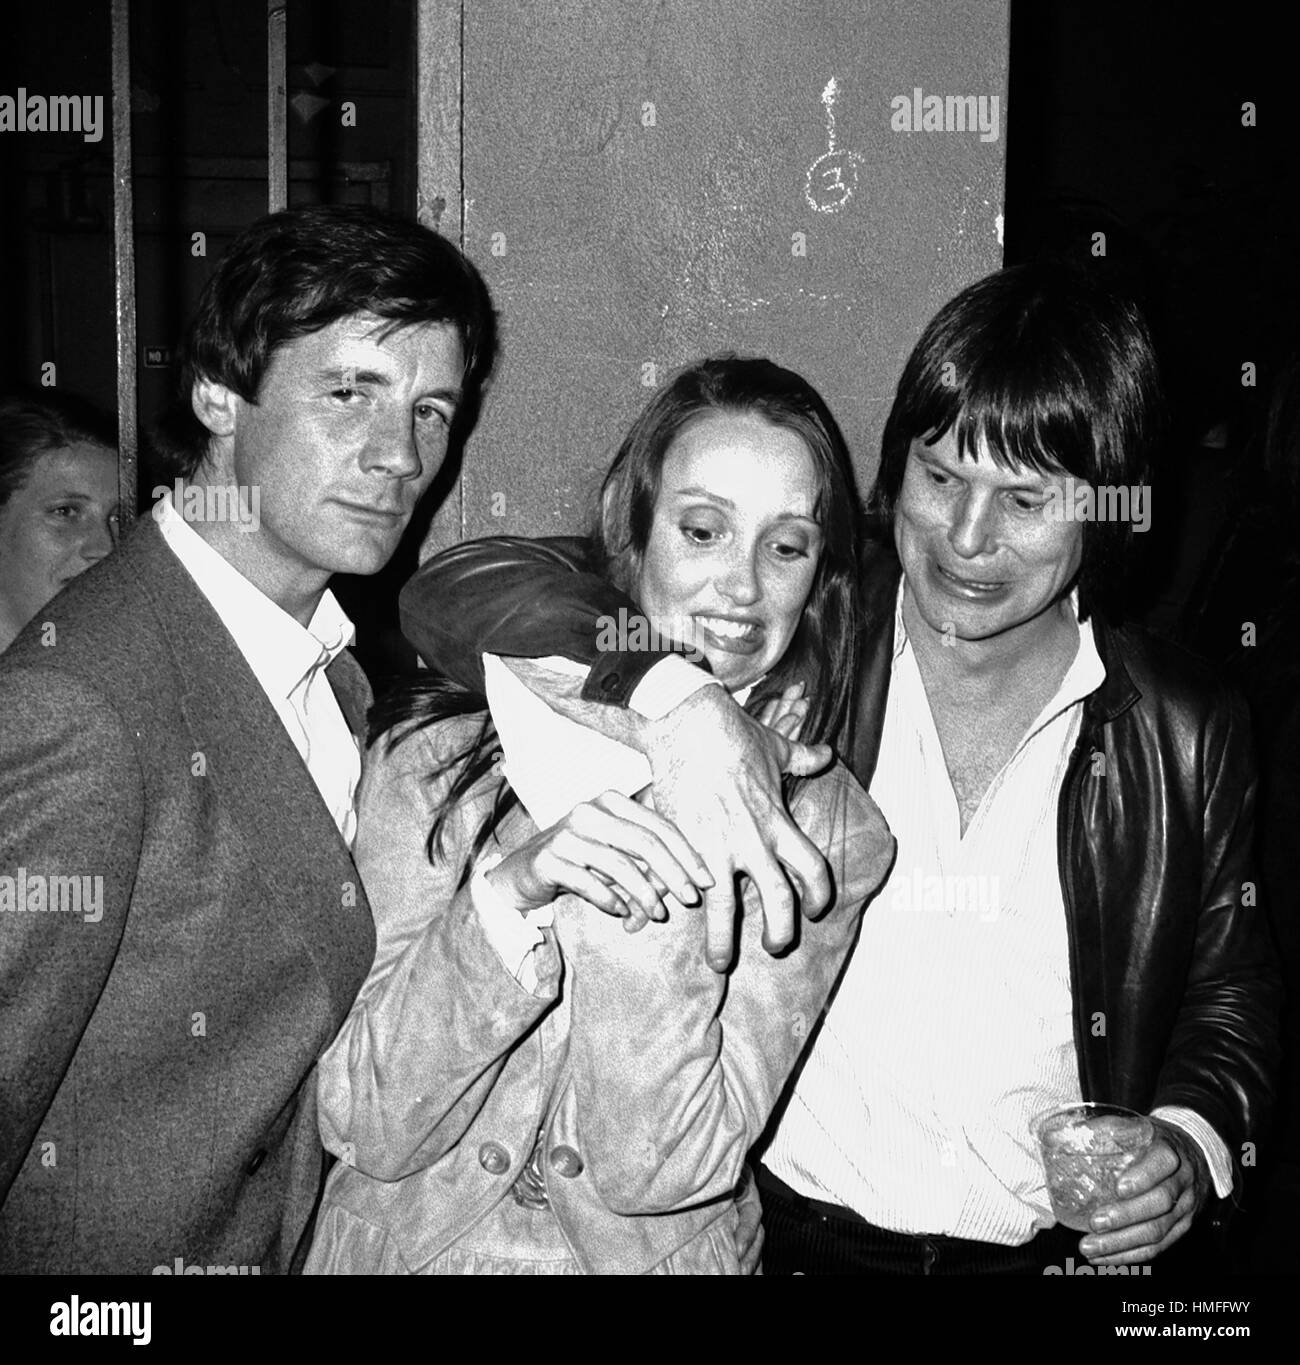 Shelley Duvall with Michael Palin & Terry Gilliam Attending a party celebrating the release of TIME BANDITS - Stock Image